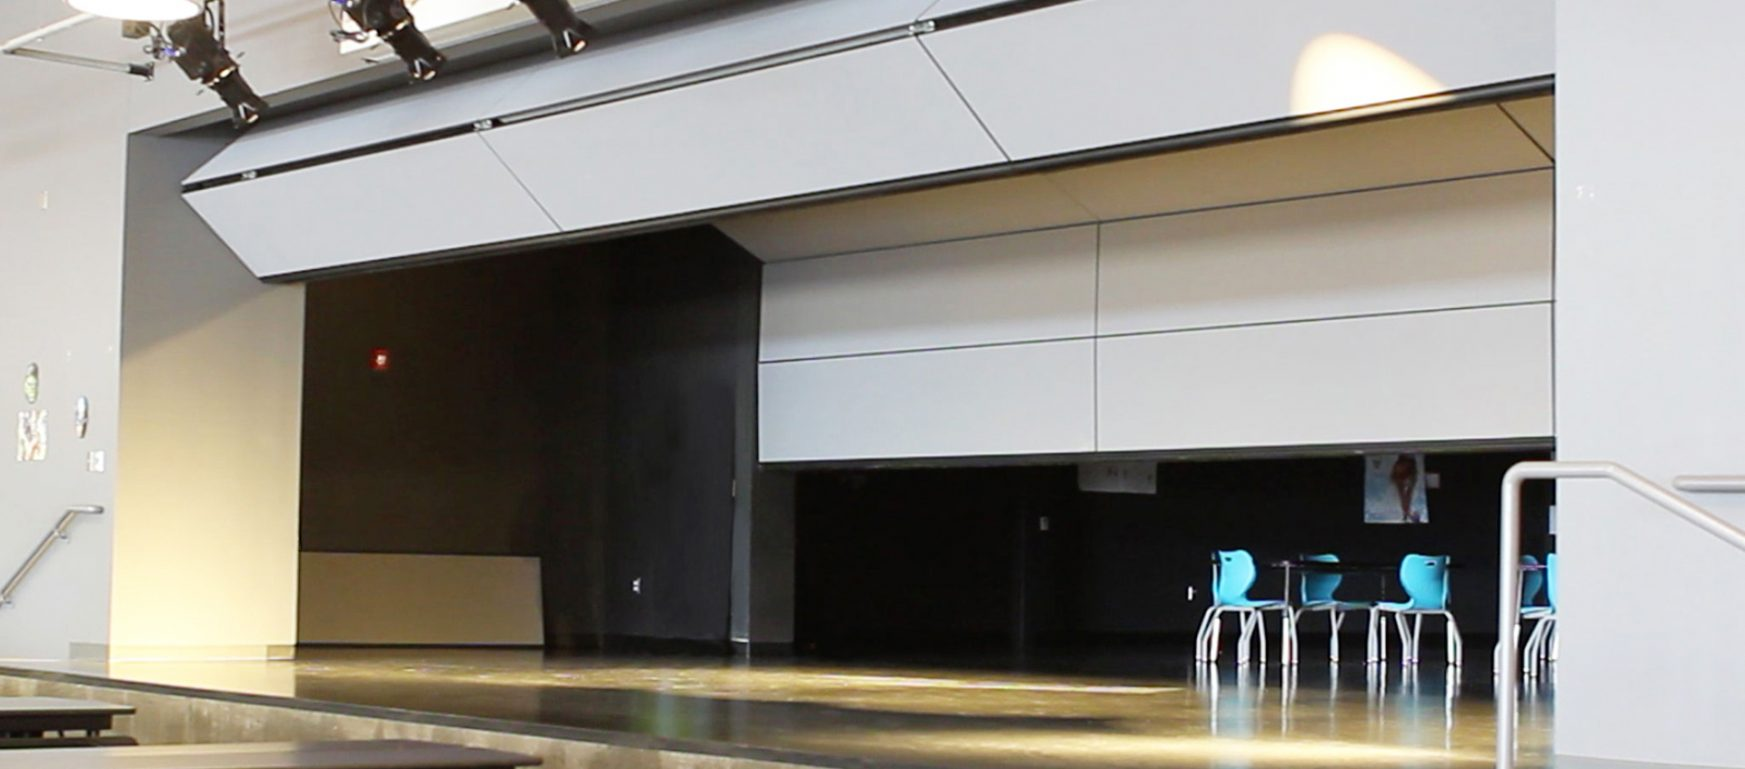 Skyfold Zenith 48 vertical retractable acoustic wall